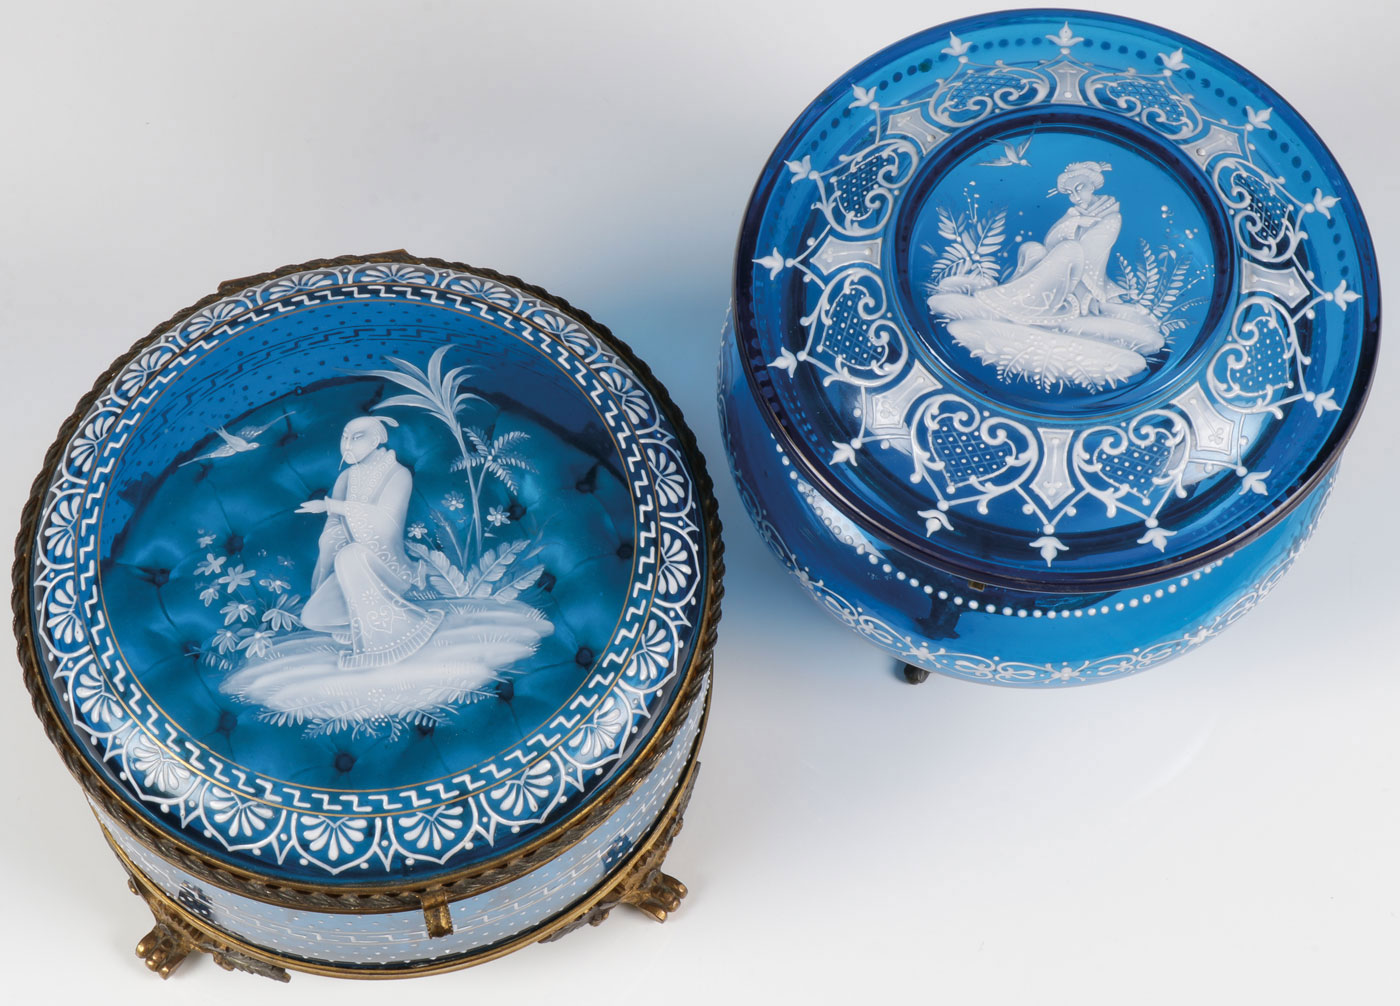 Lot 33 - TWO EXCEPTIONAL MARY GREGORY BOXES, C. 1890